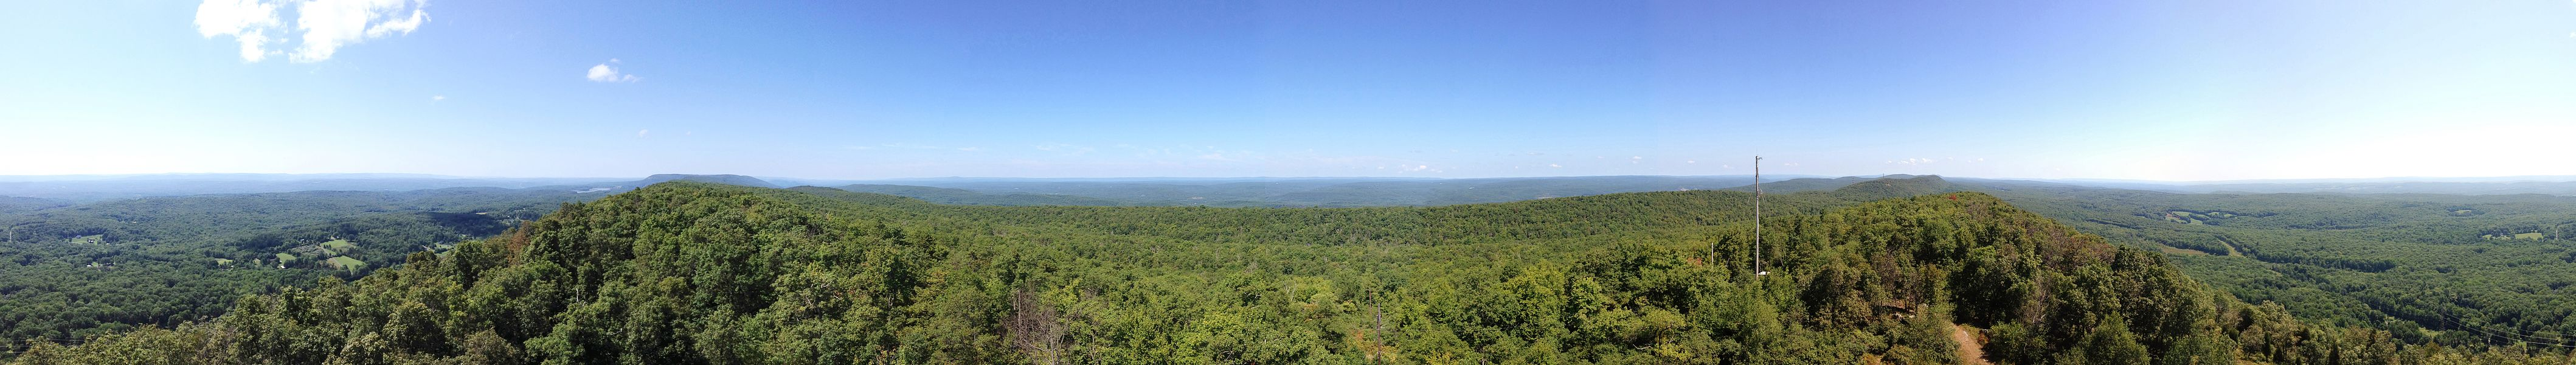 Catfish Fire Tower view